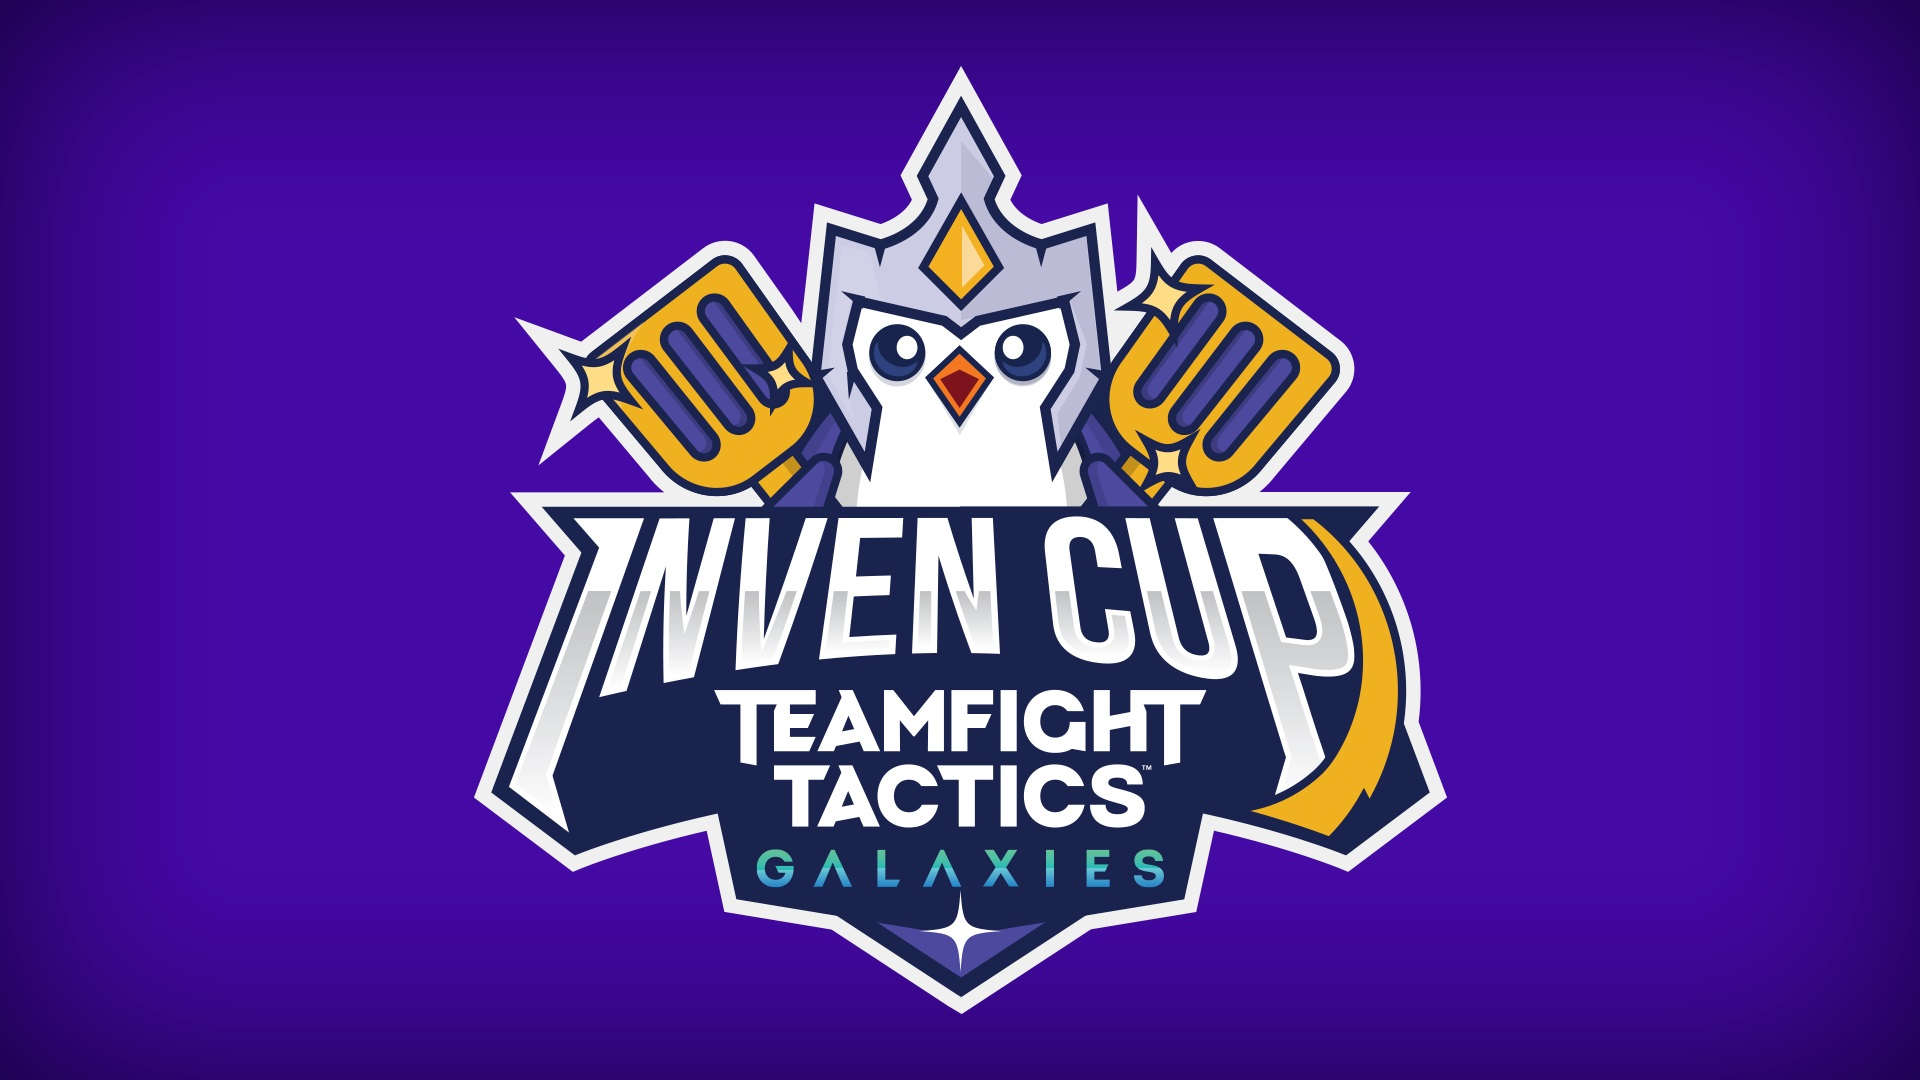 TFT_Iven_Cup.jpg